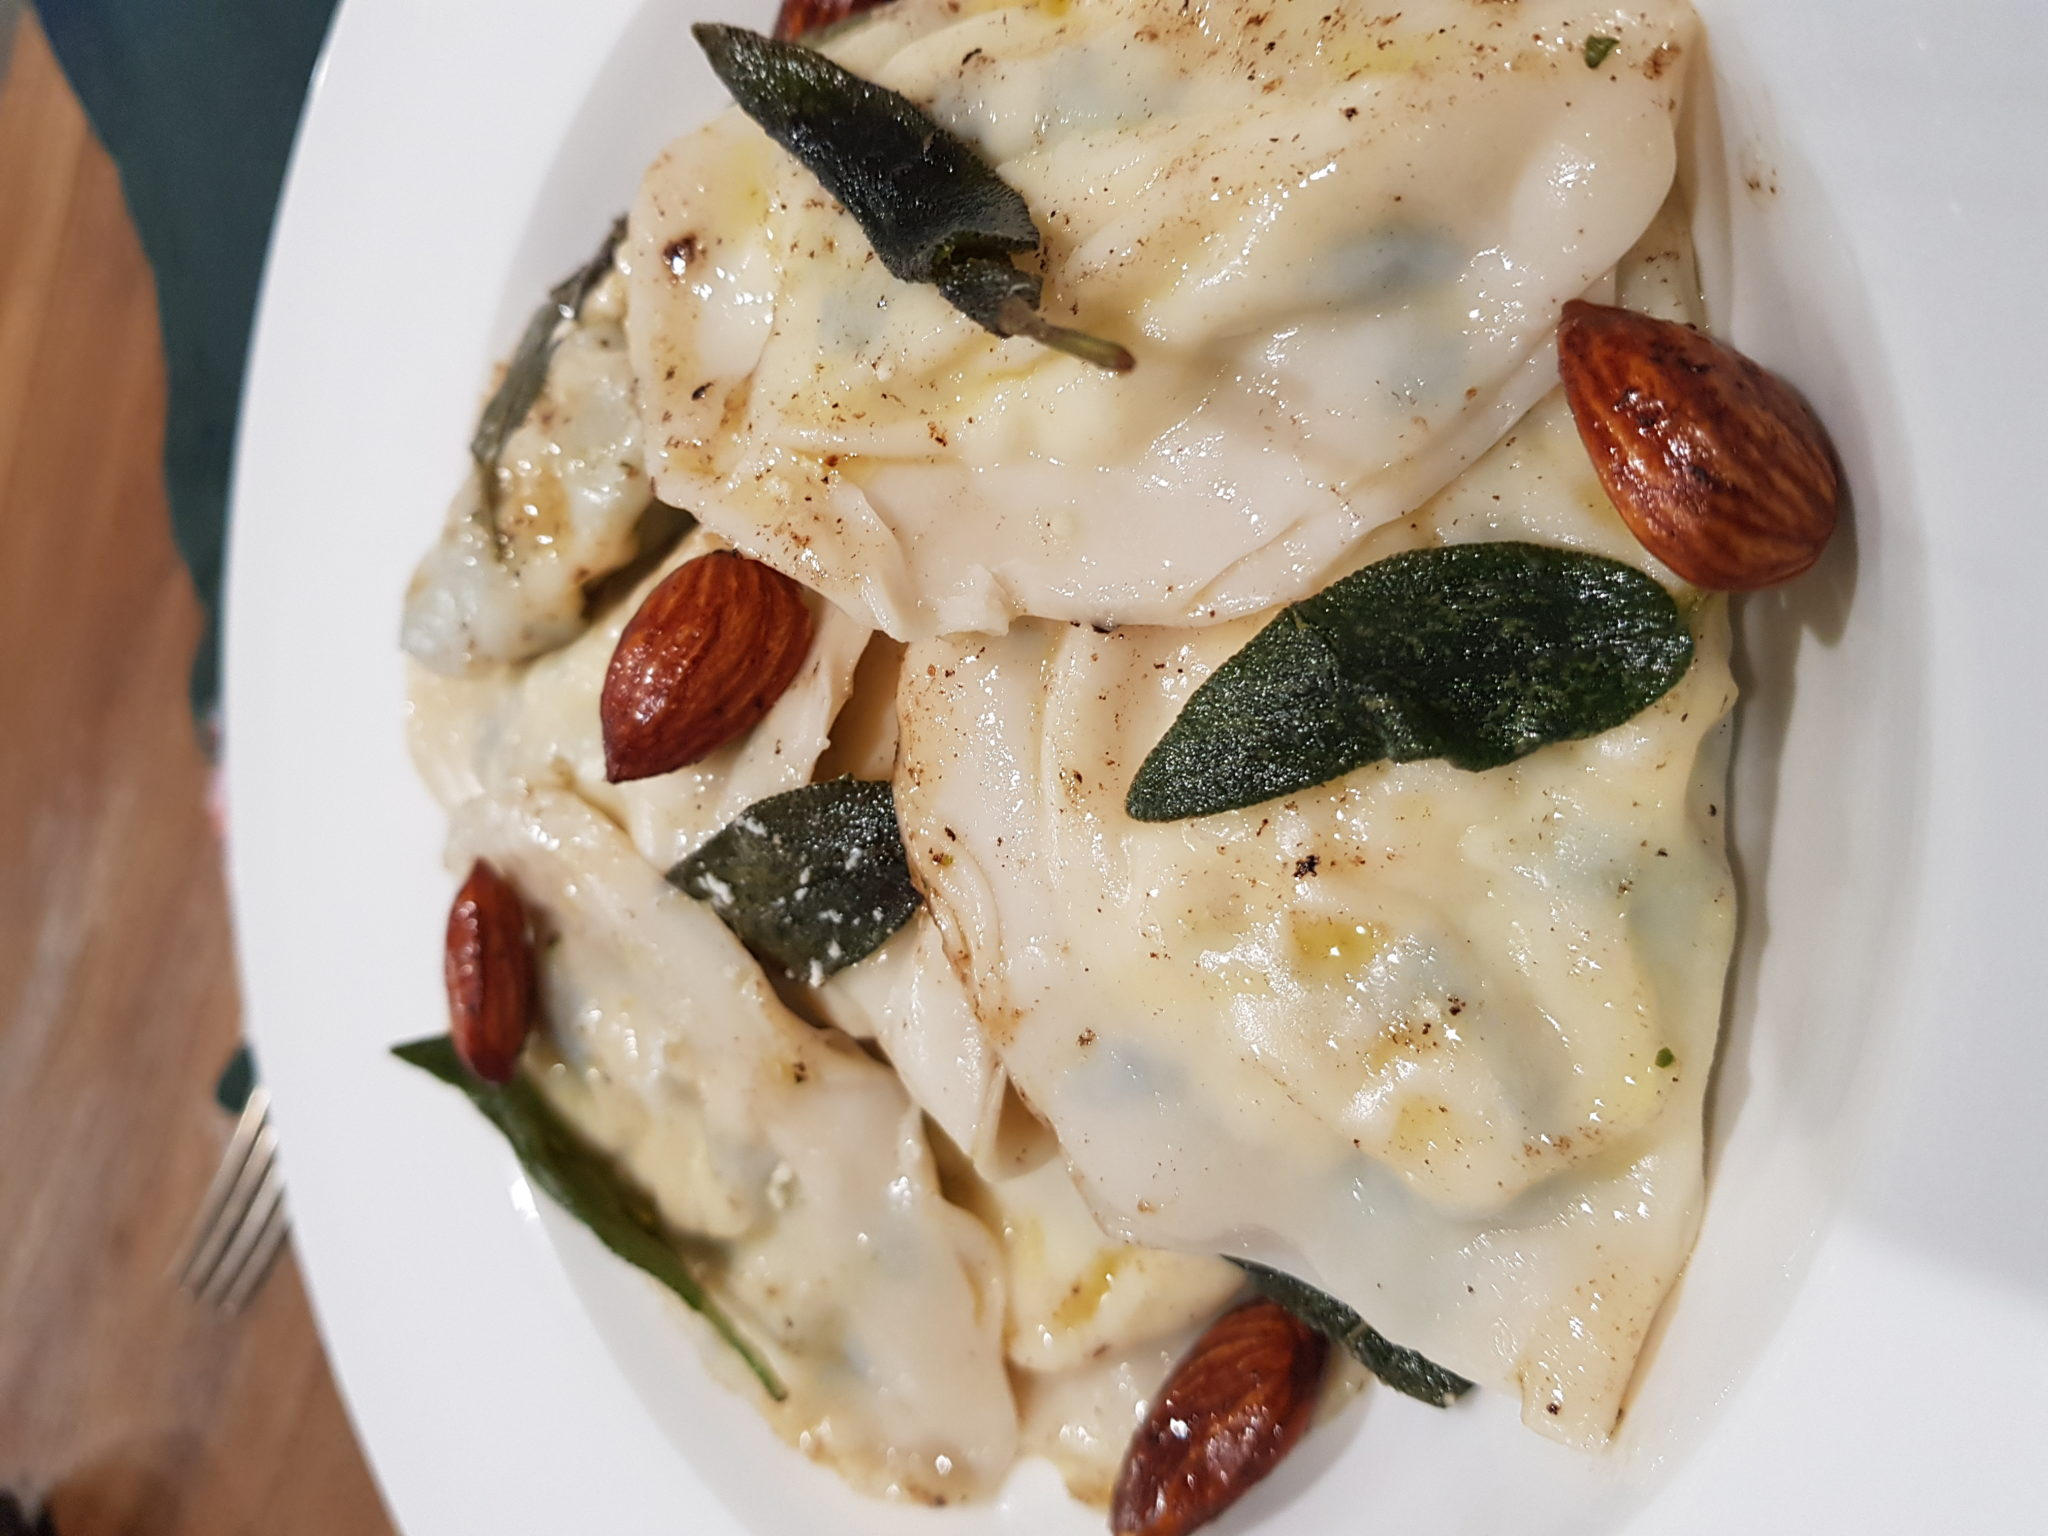 Why is the Mediterranean diet good for our immune system? With special recipe: Spinach and Ricotta Ravioli with EVOO and Sage Sauce